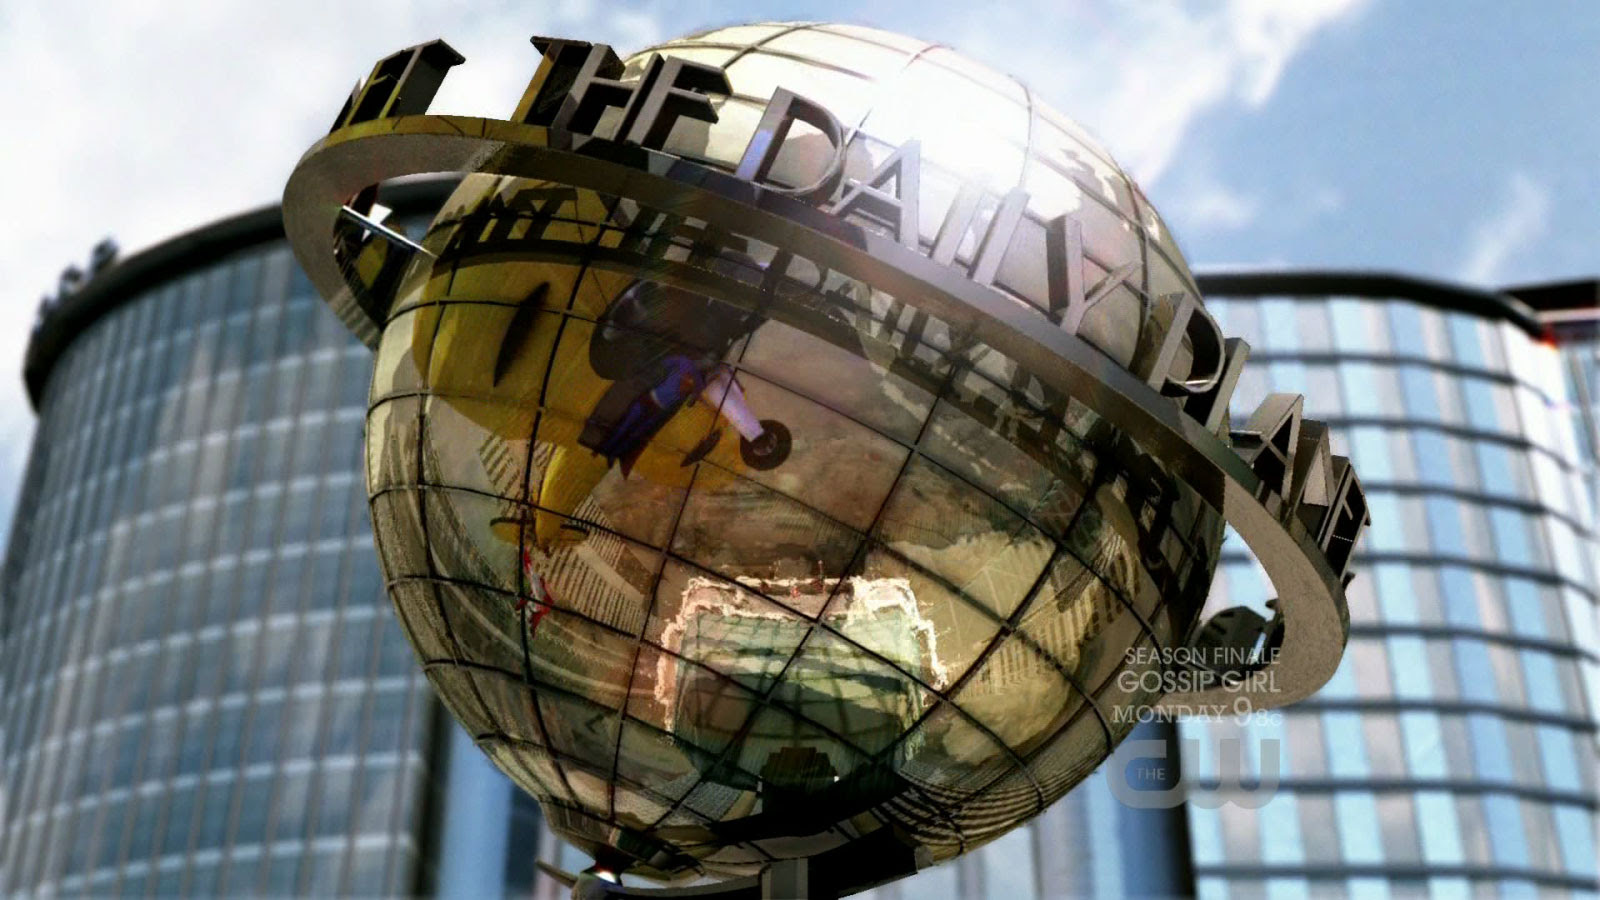 Daily Planet Wallpaper